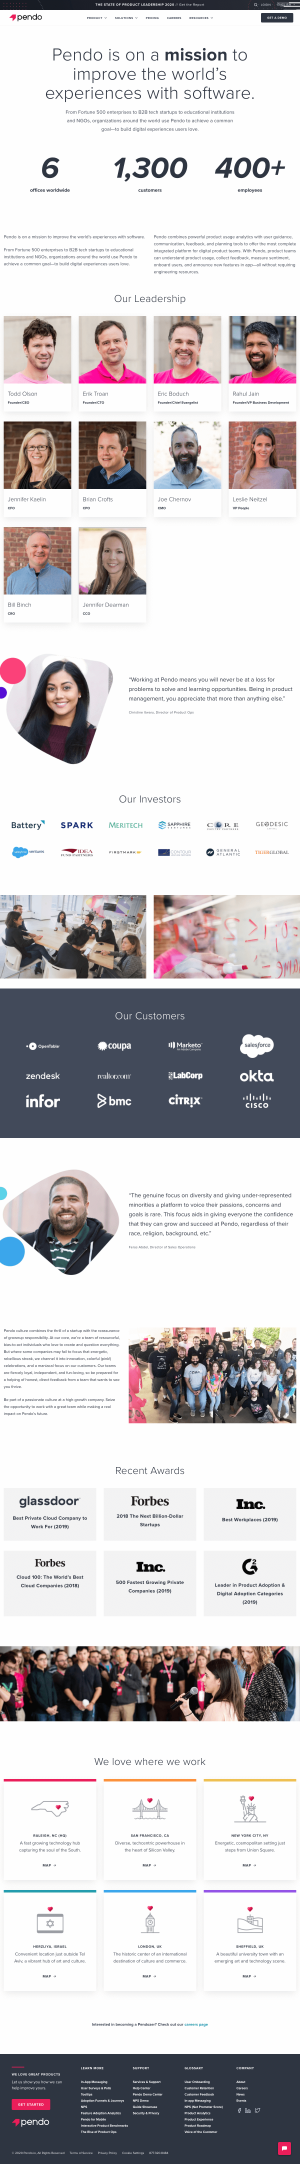 pendo.io – About Us page